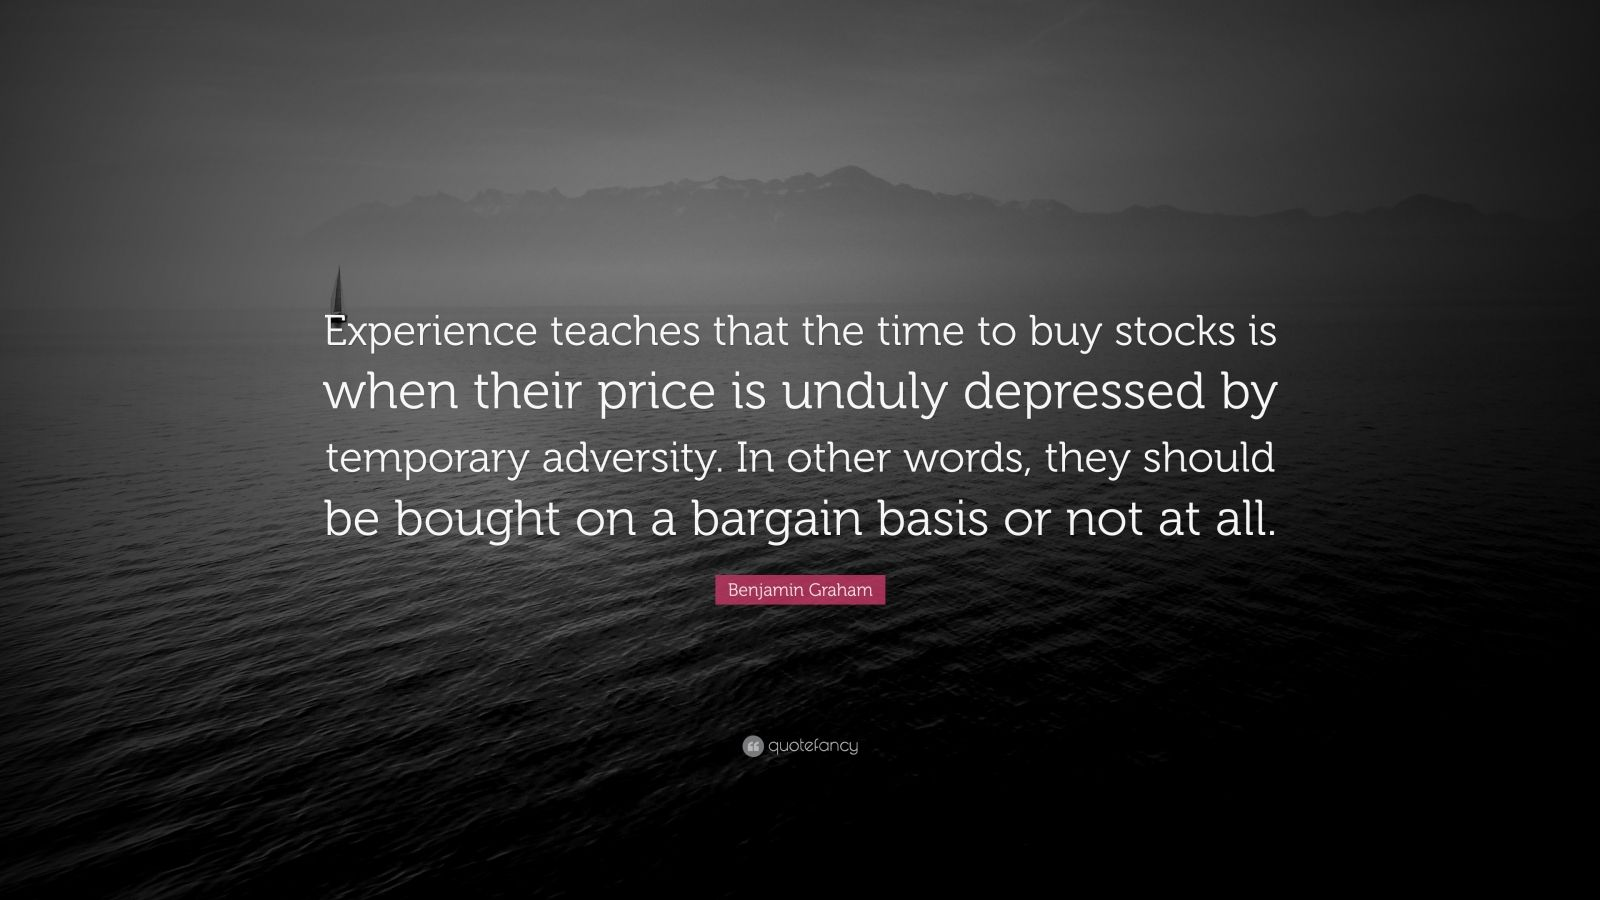 """Benjamin Graham Quote: """"Experience teaches that the time to buy stocks is when their price is unduly depressed by temporary adversity. In other words, they should be bought on a bargain basis or not at all."""""""